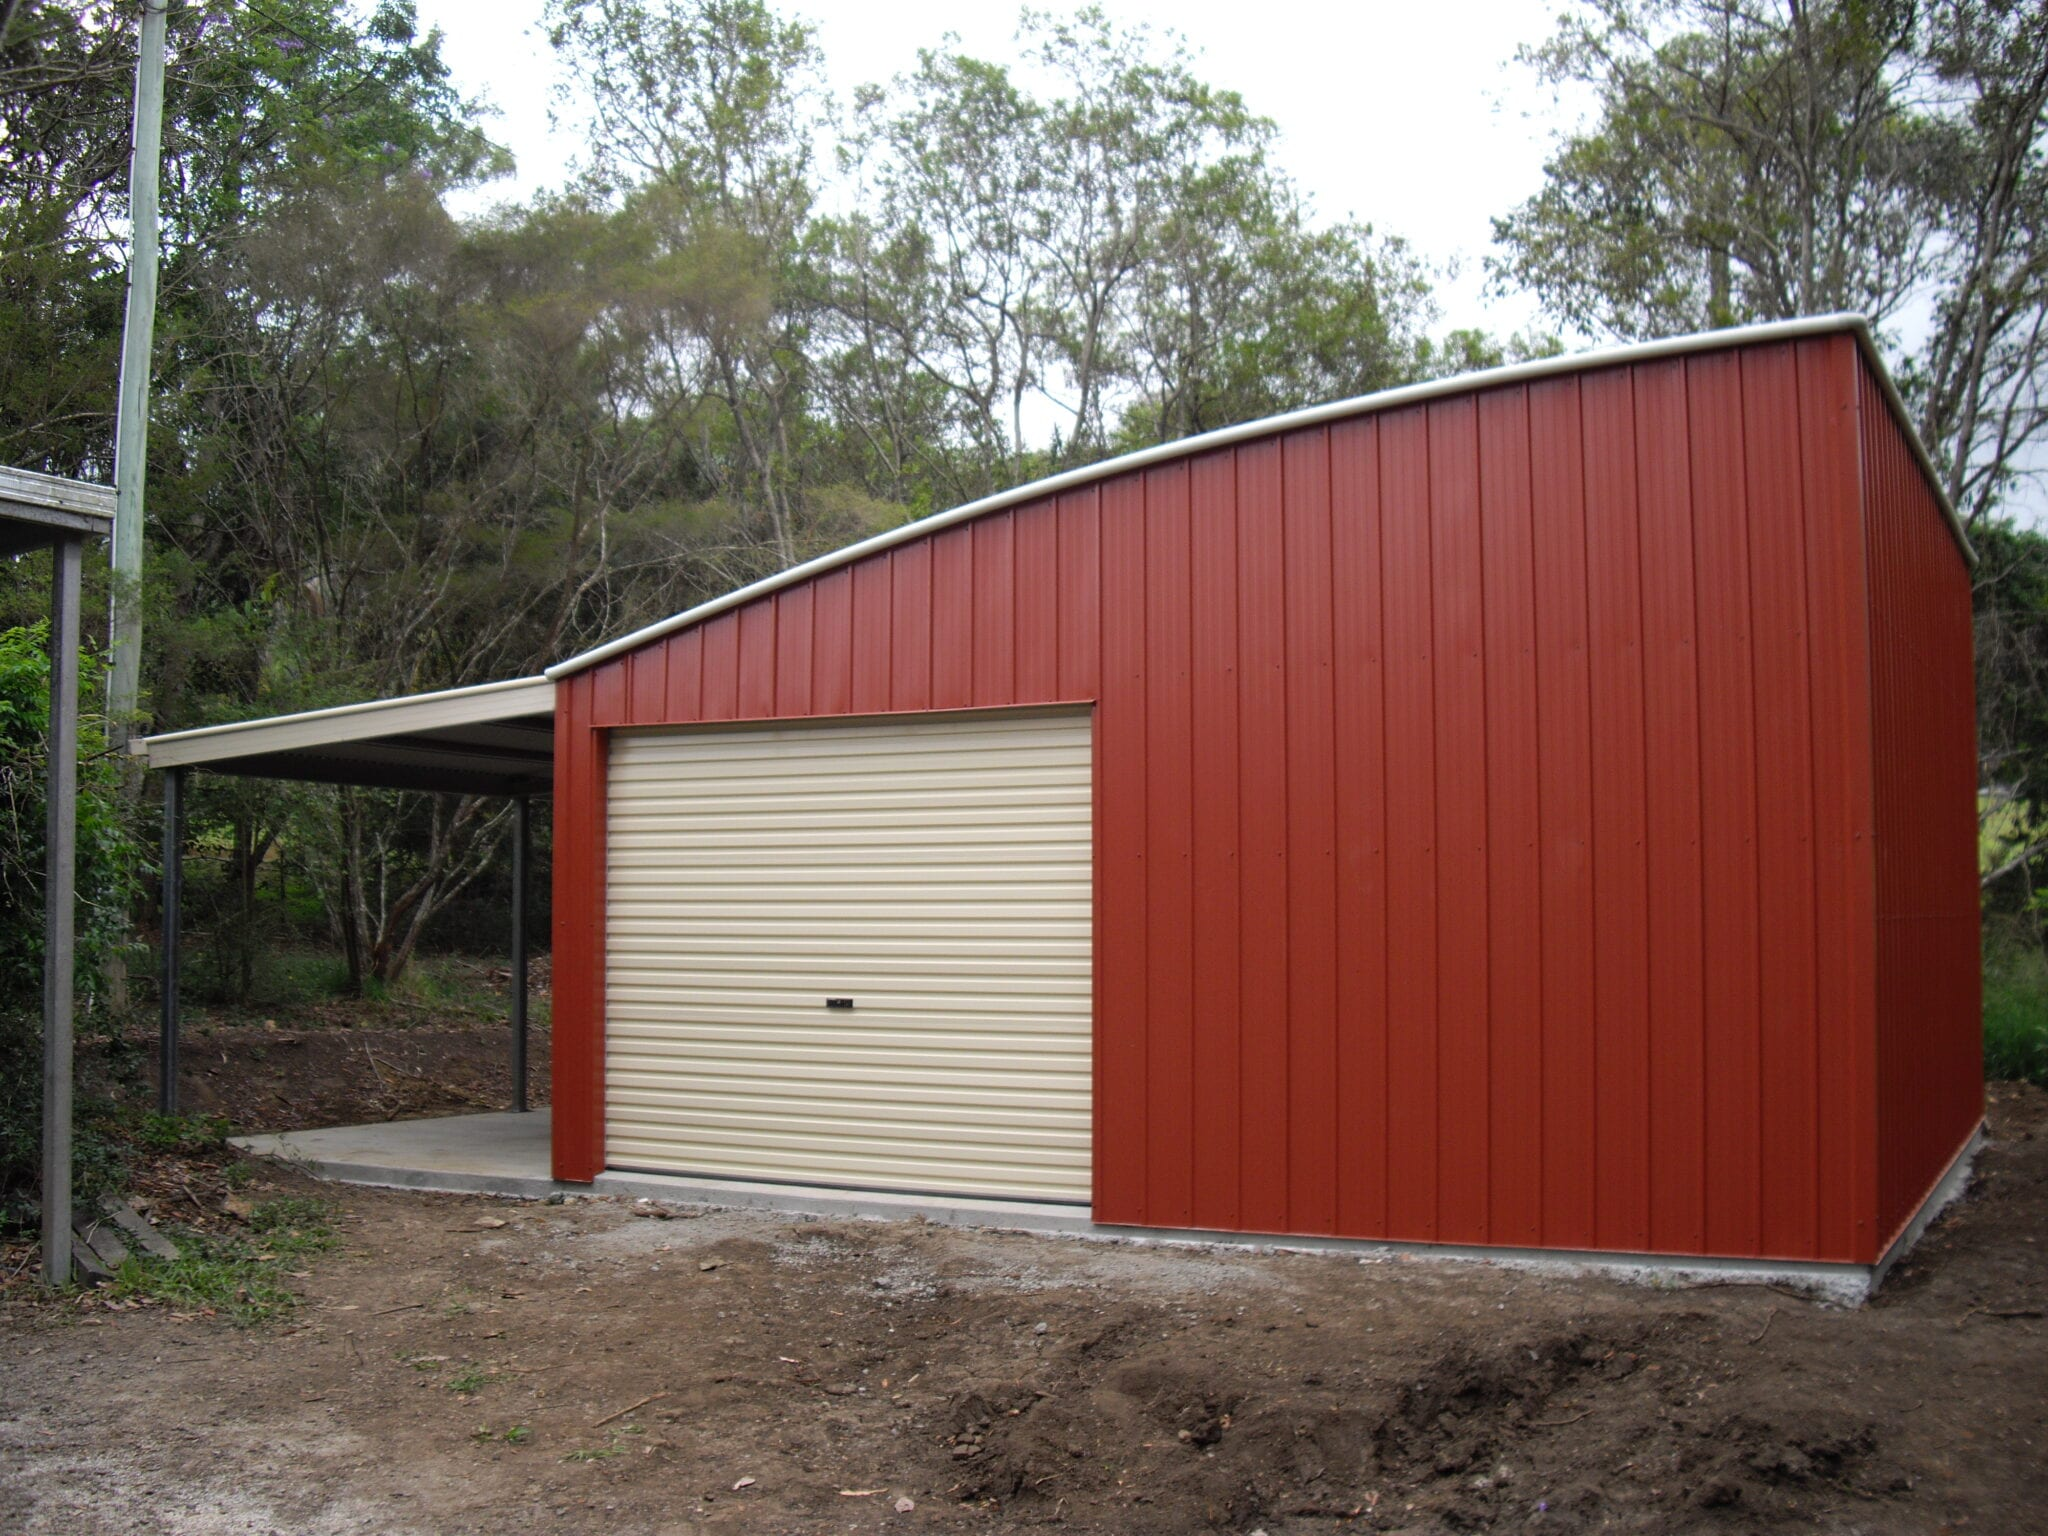 Curved red shed with owning